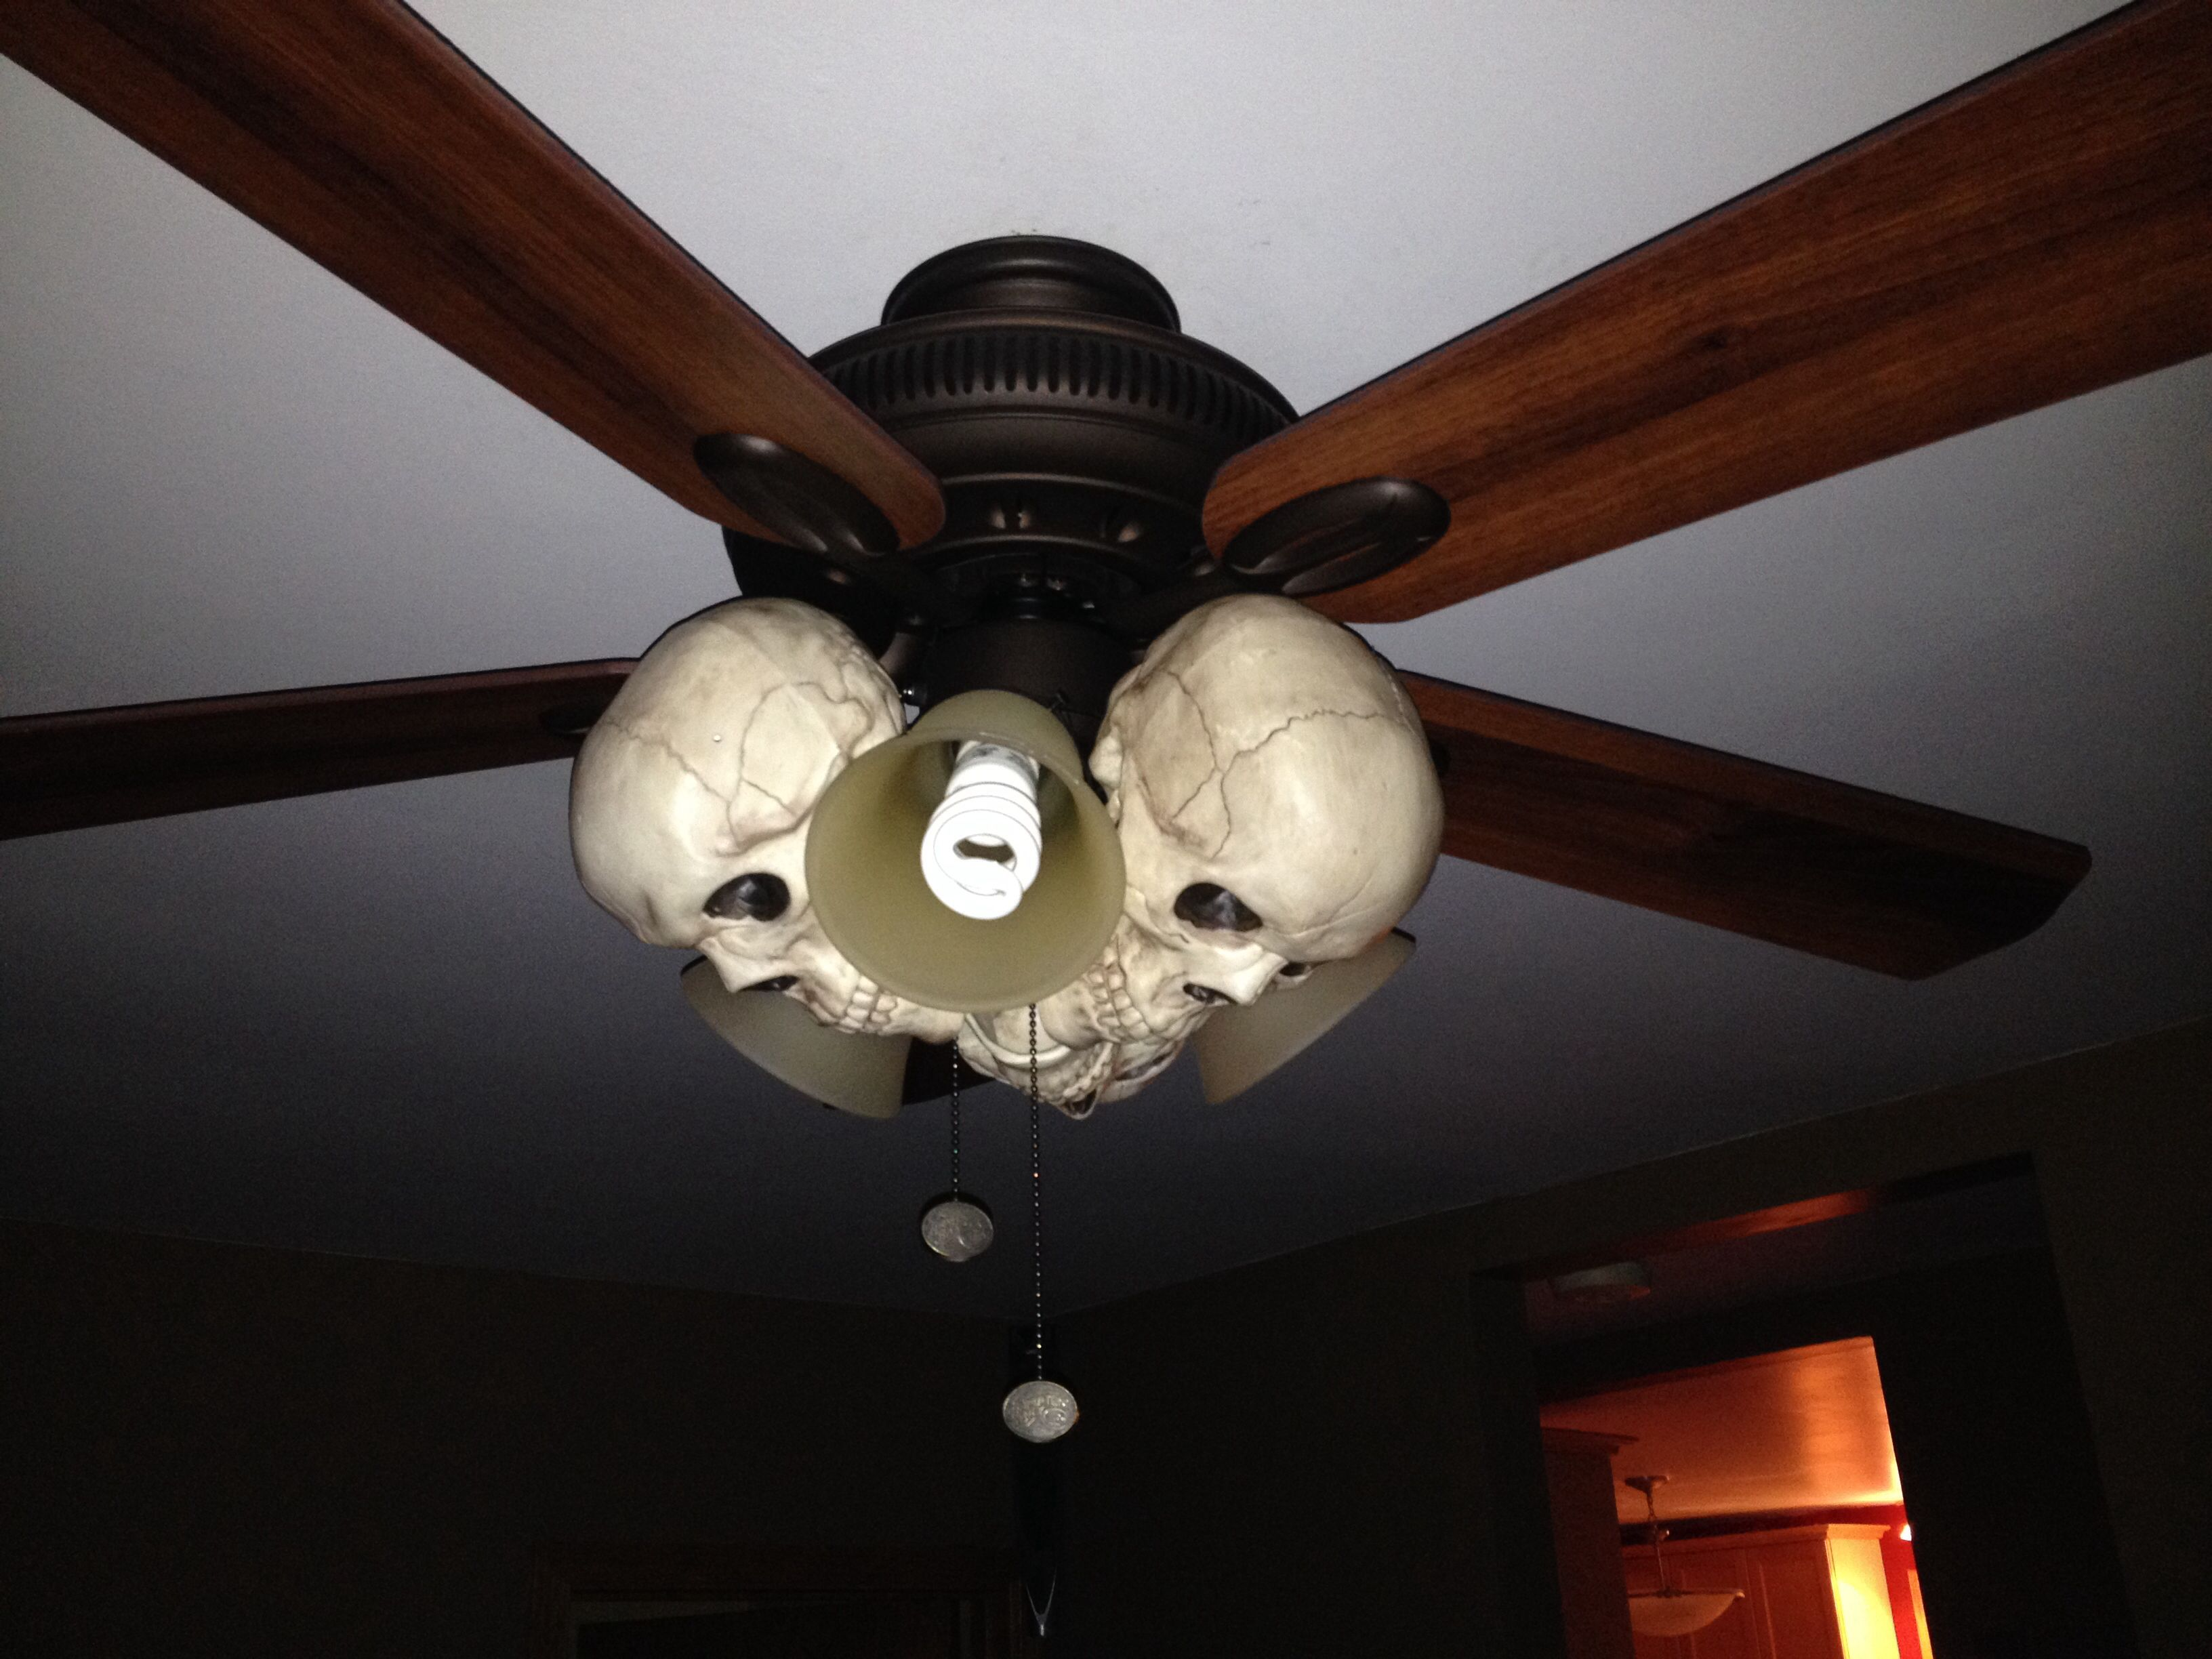 Easy way to decorate ceiling fan with 3 dollar store skulls